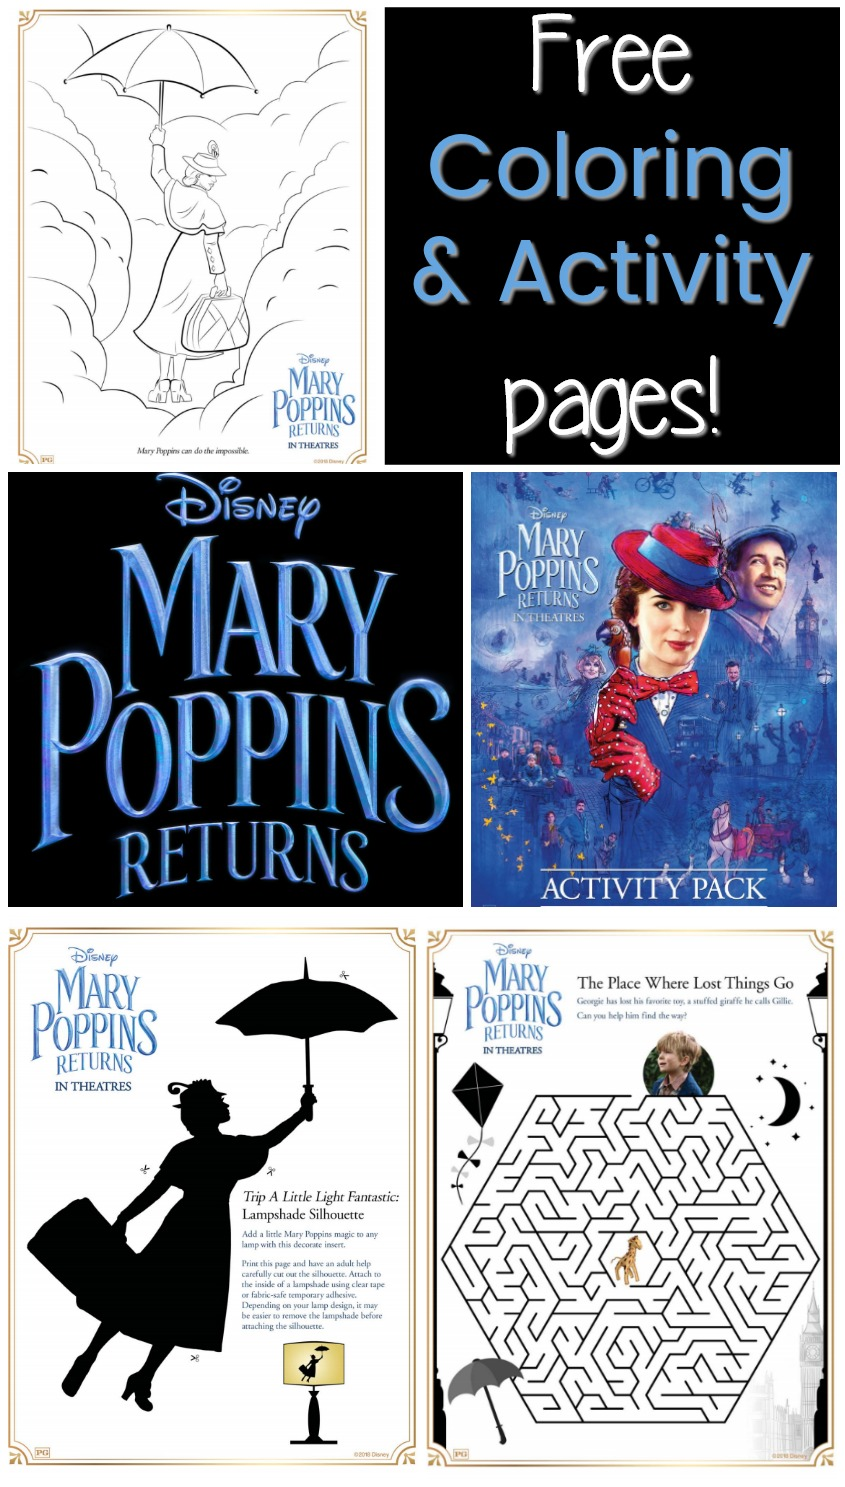 Mary Poppins Returns In Theaters Now Free Coloring Pages